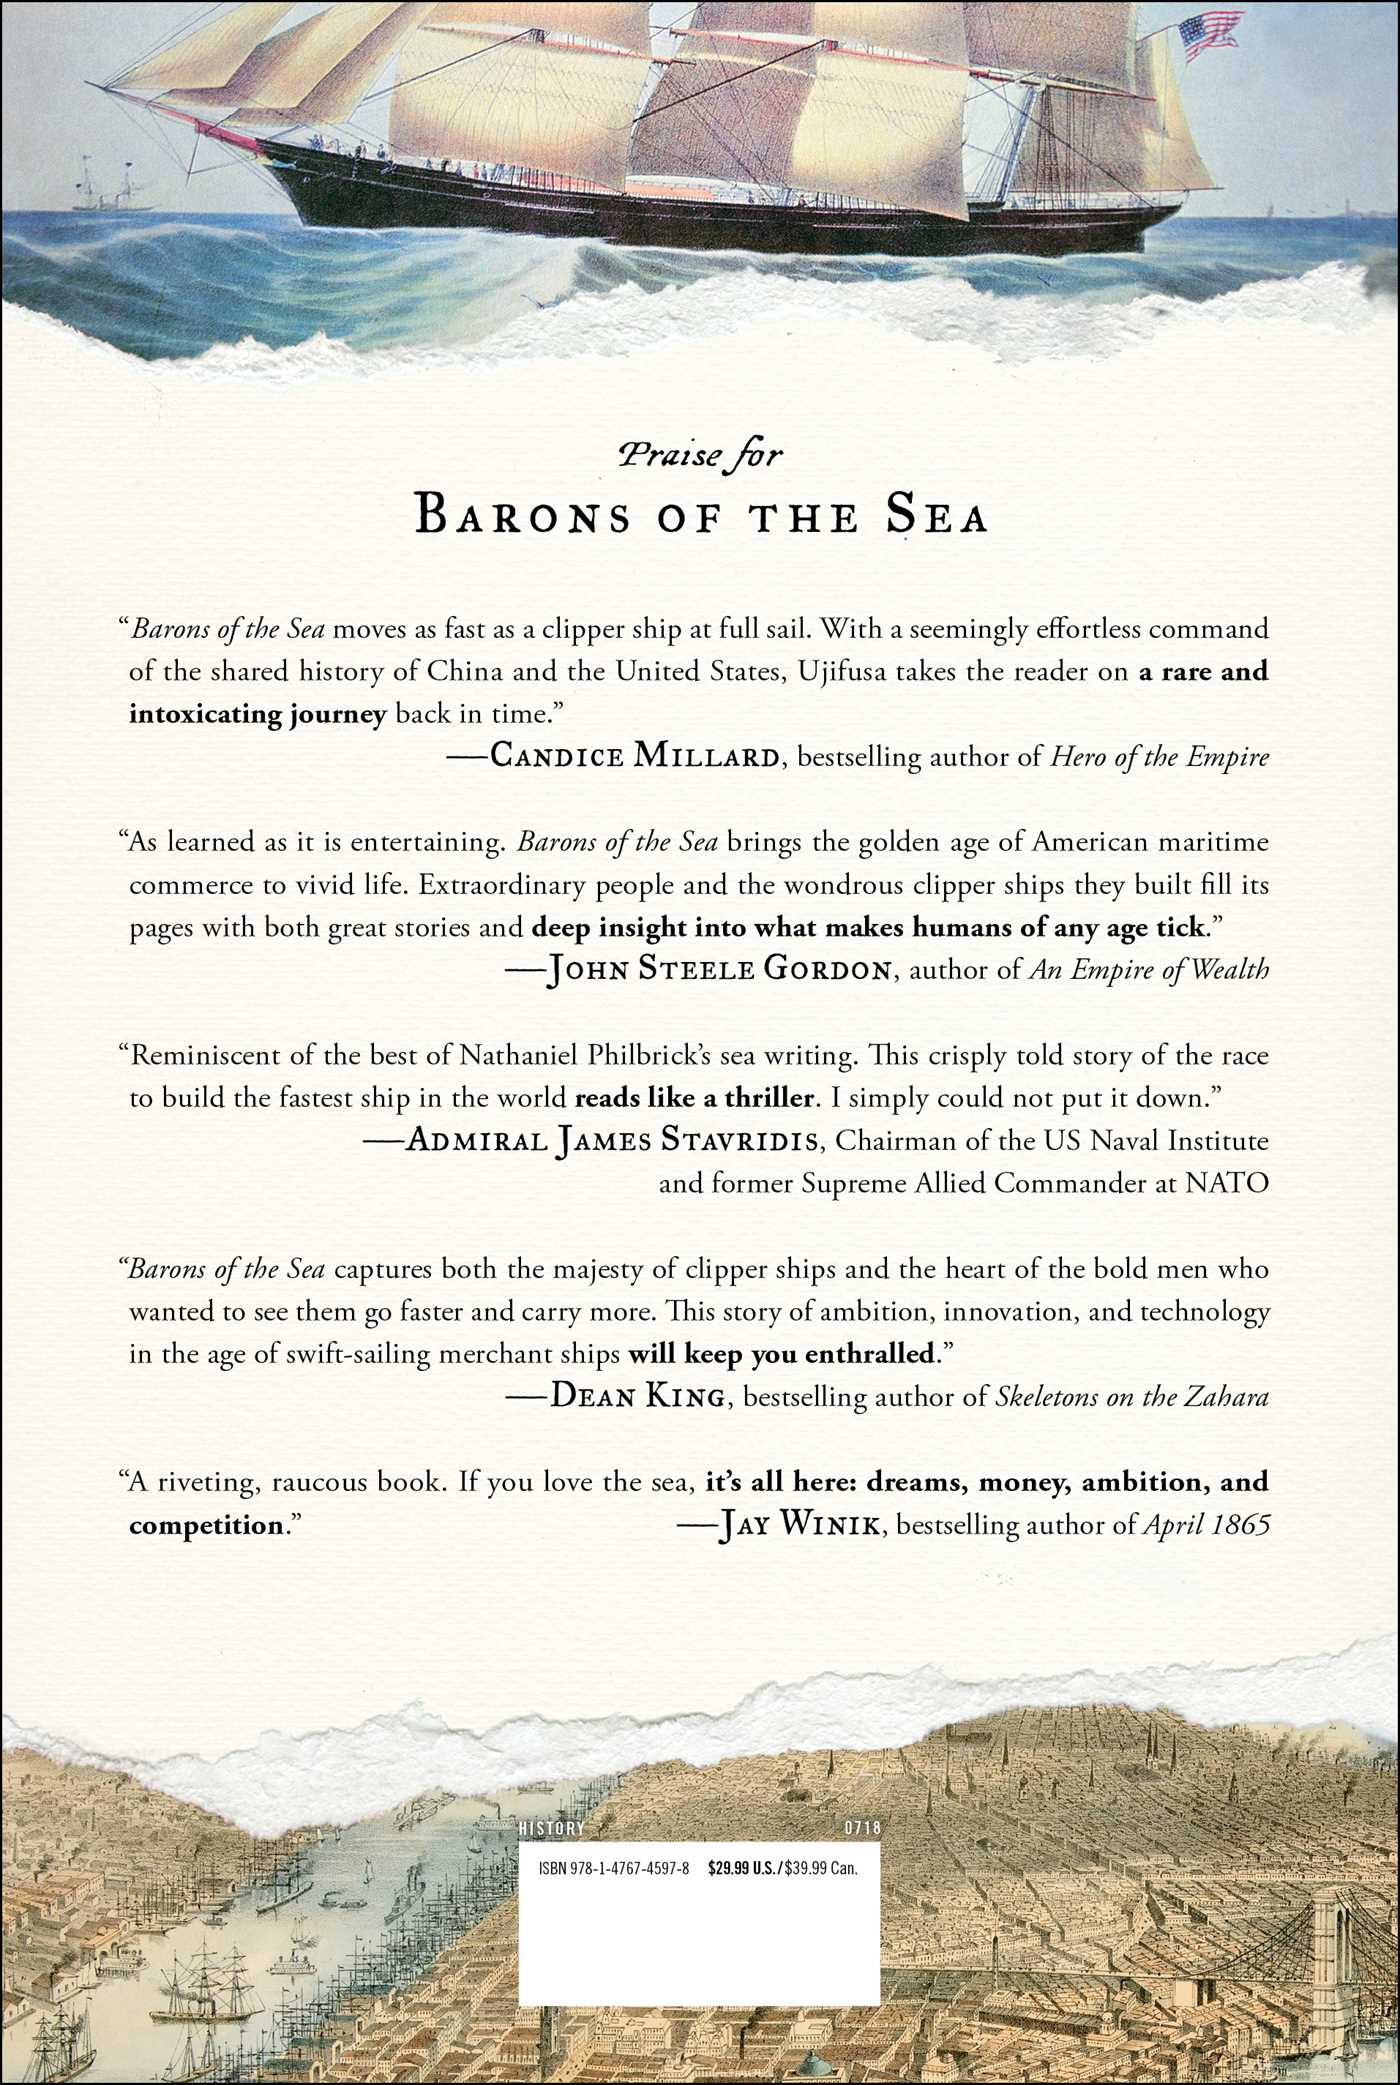 Barons of the sea 9781476745978 hr back